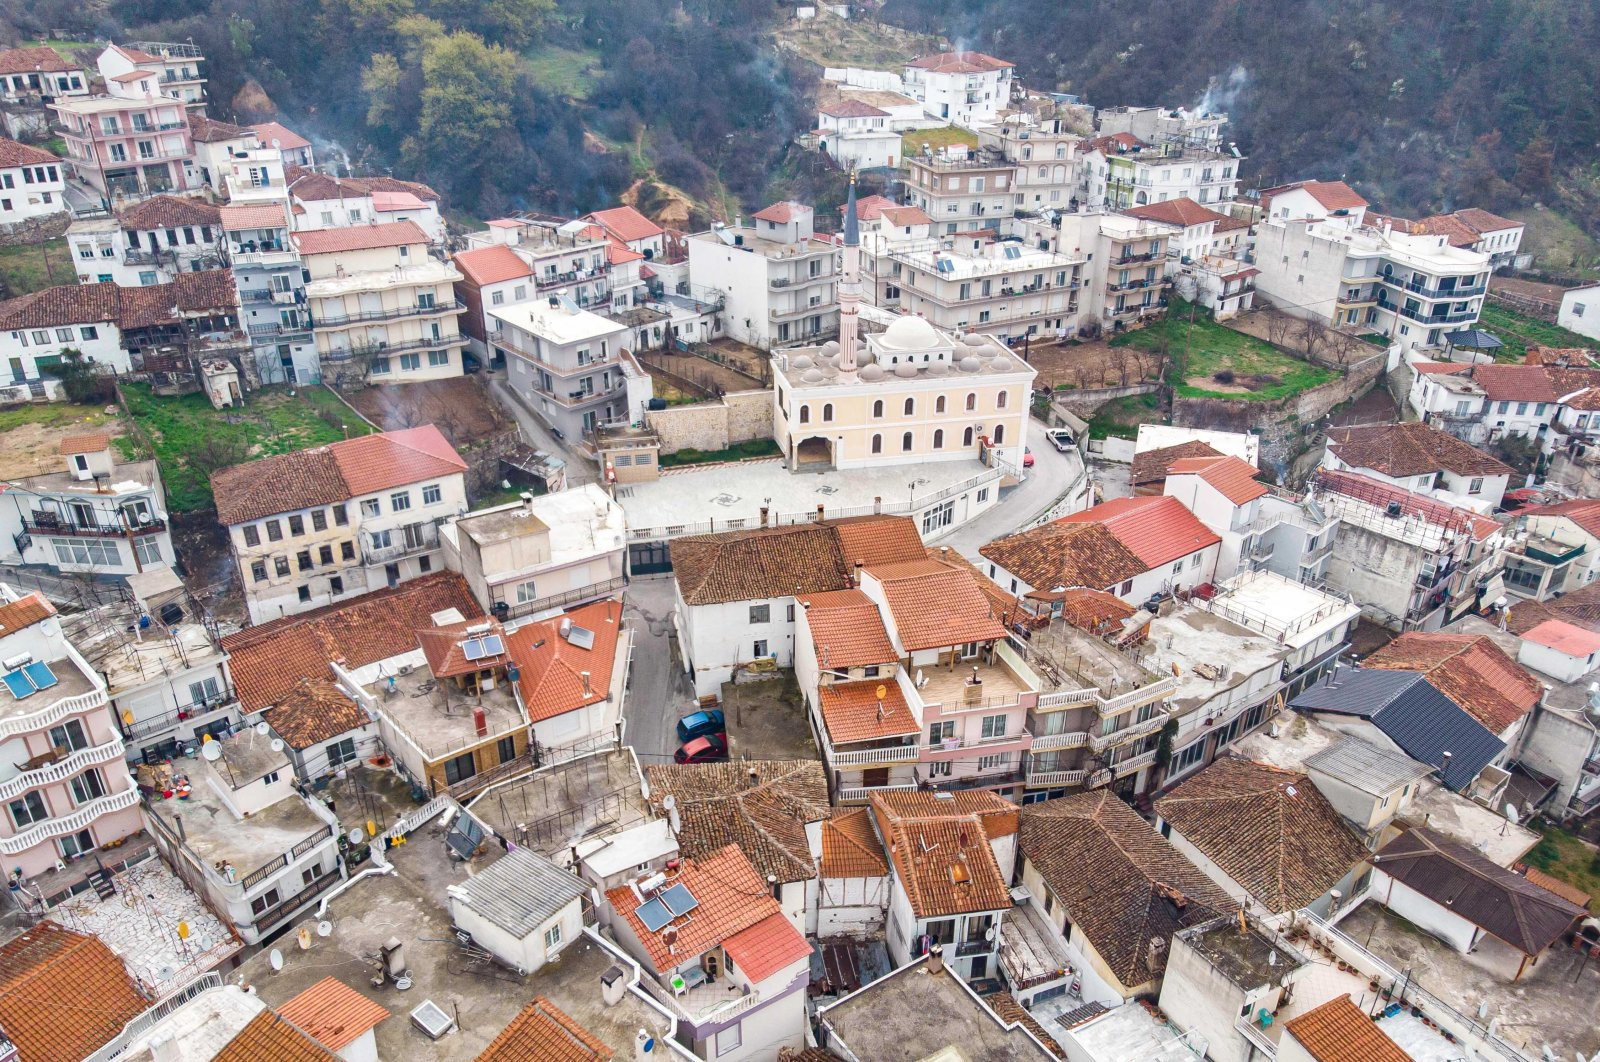 Aerial view from a drone of Echinos village in Greece on March 31, 2020. (Getty Images)